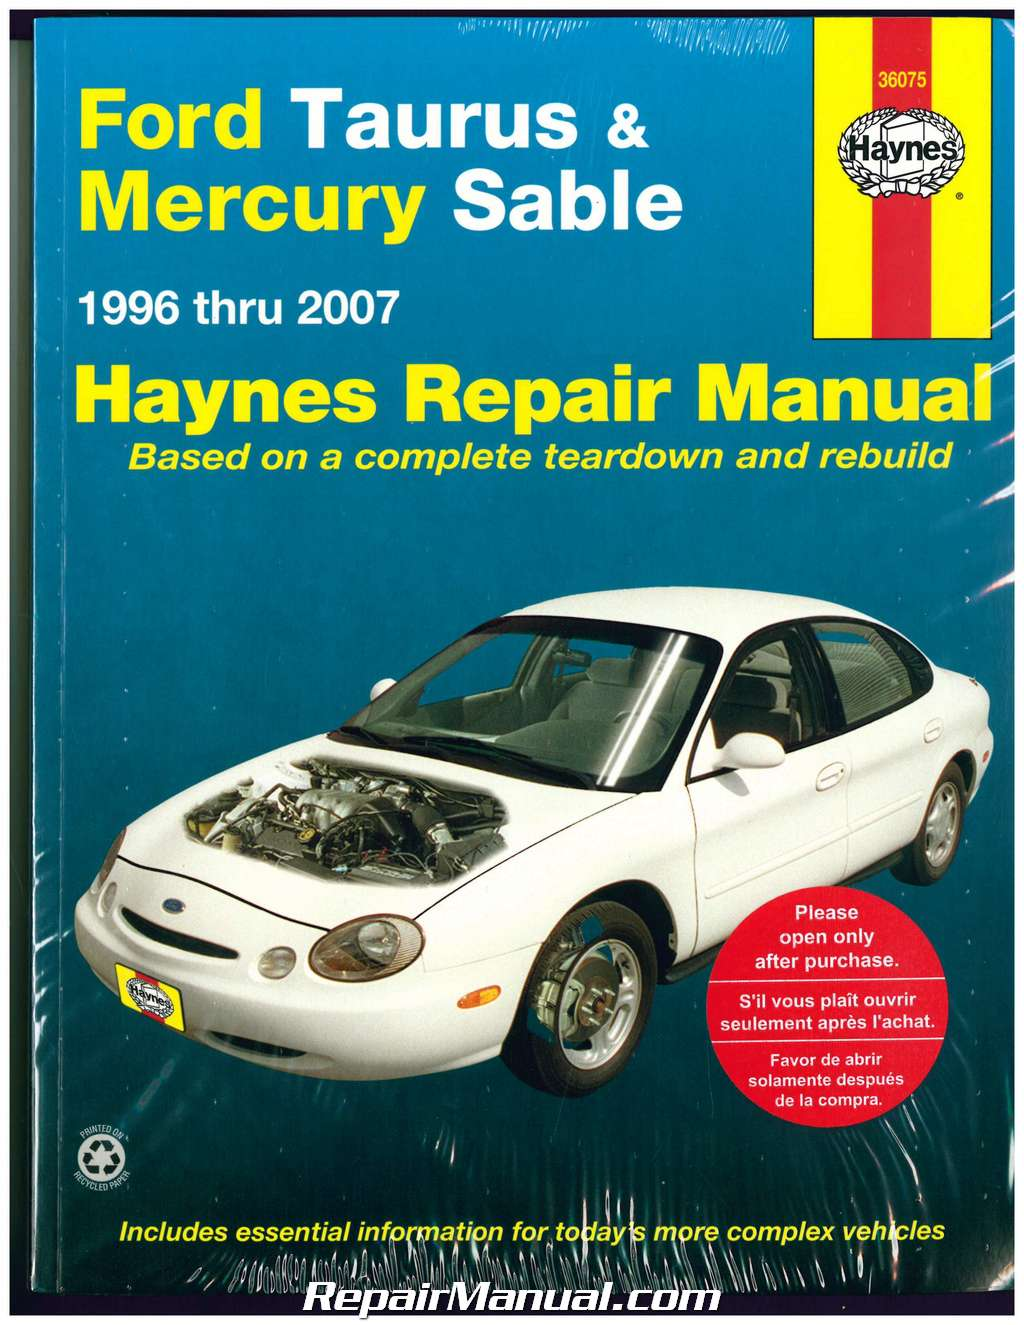 Haynes Ford Taurus Mercury Sable 1996-2007 Ford Repair Manual